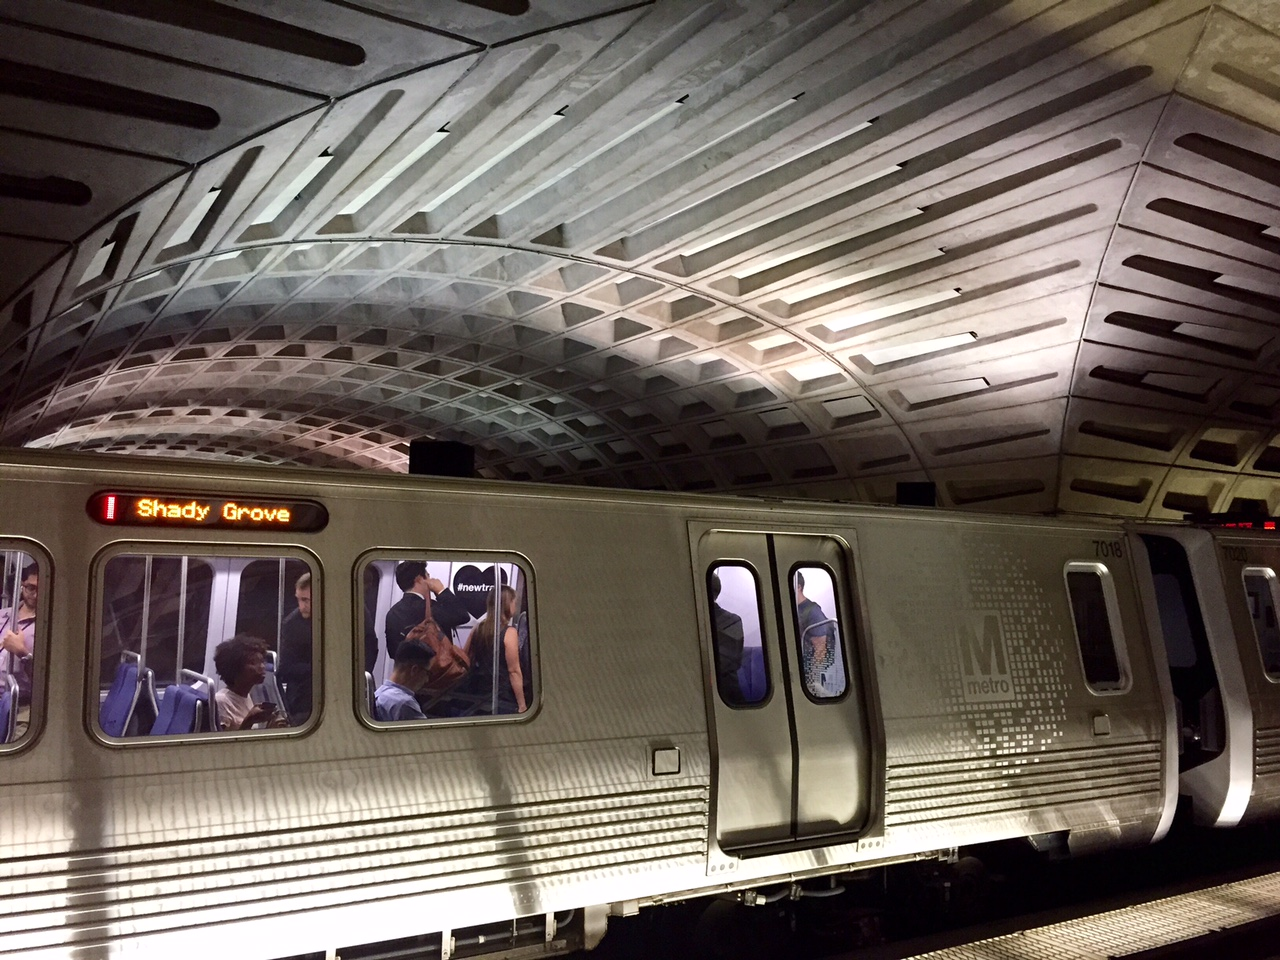 Metro shake-up won't immediately change delays, persistent train problems